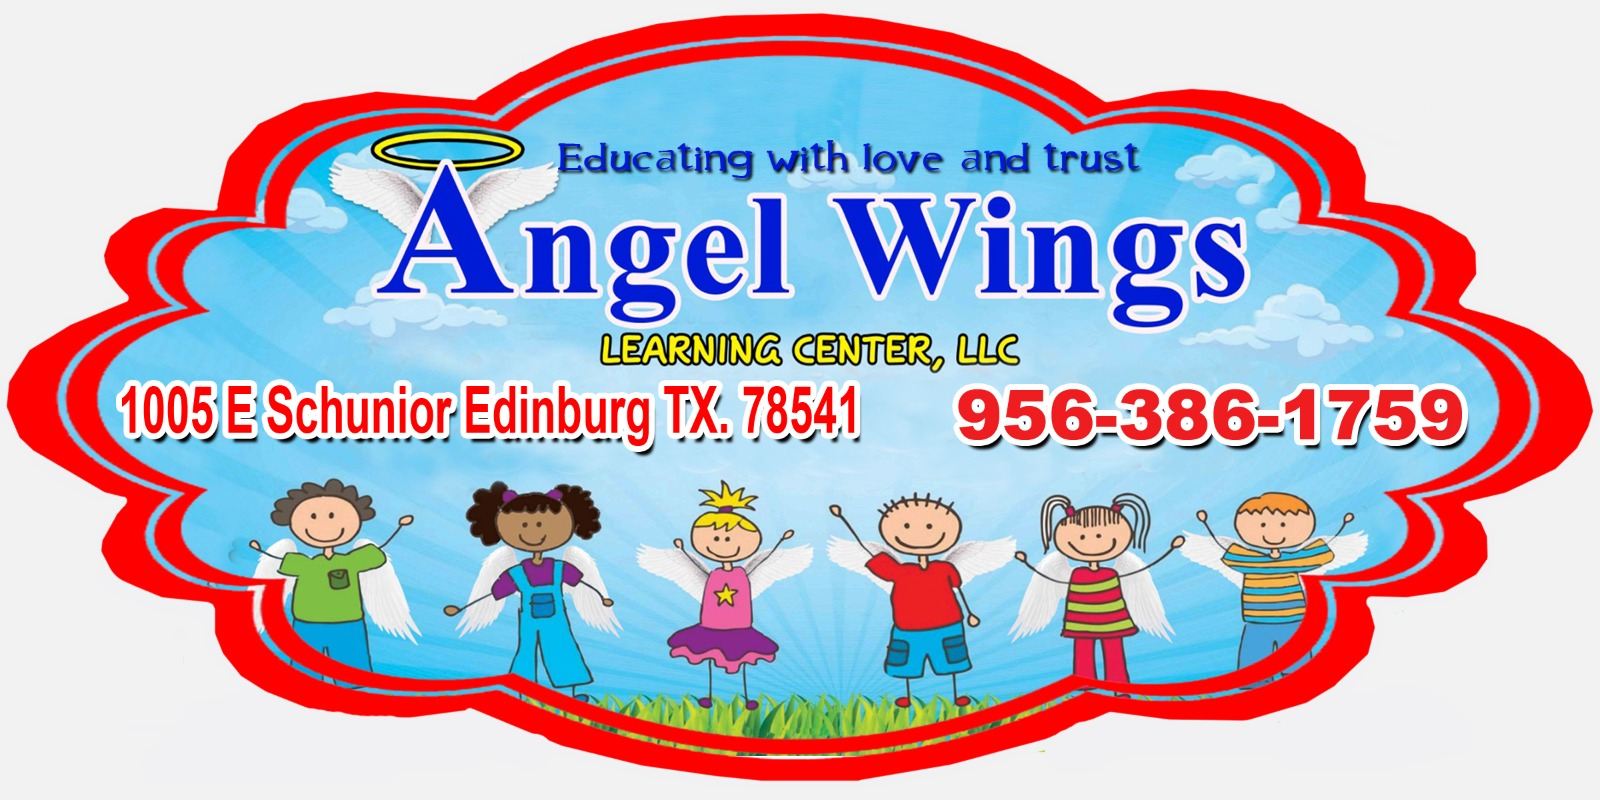 Angel Wings Learning Center, LLC